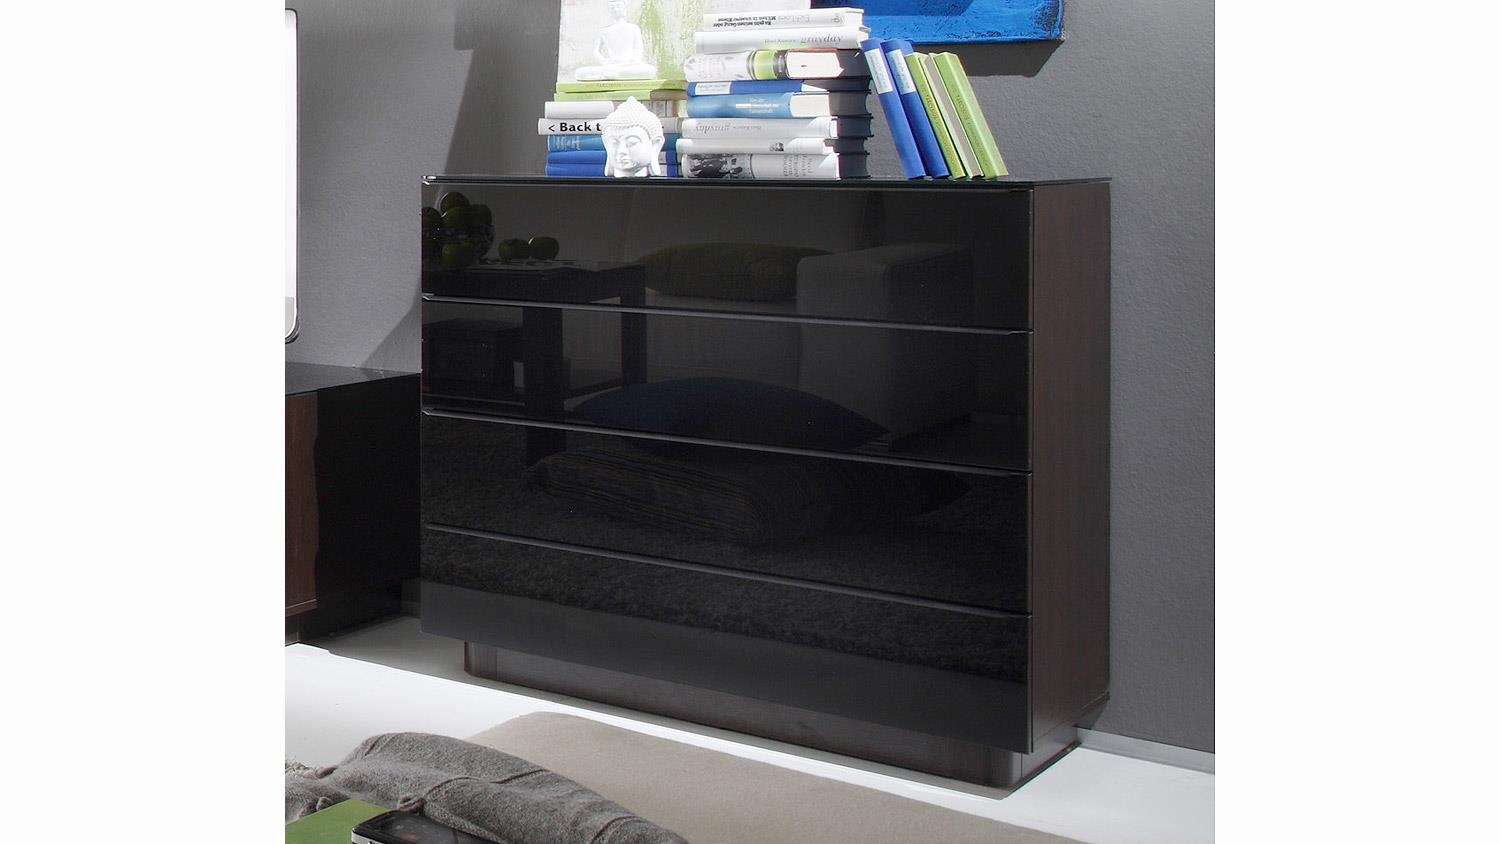 kommode togos wm glas schwarz und wenge b 89 cm. Black Bedroom Furniture Sets. Home Design Ideas